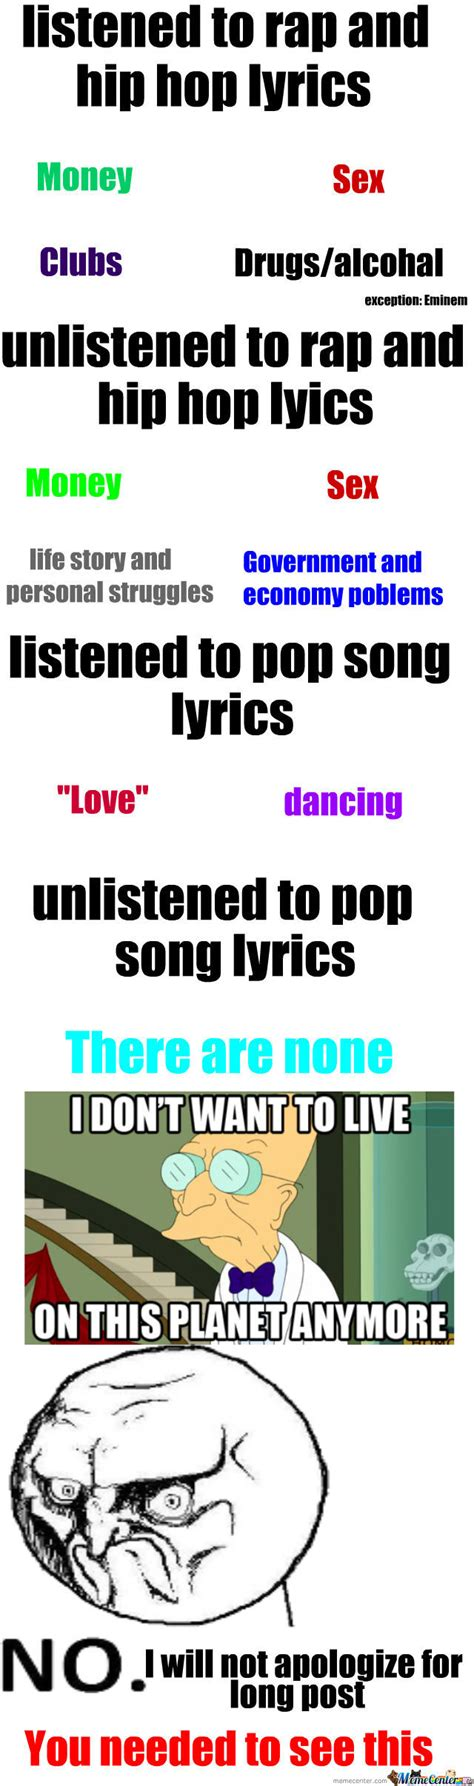 Todays Most Popular Song Topics by kaylagomez   Meme Center